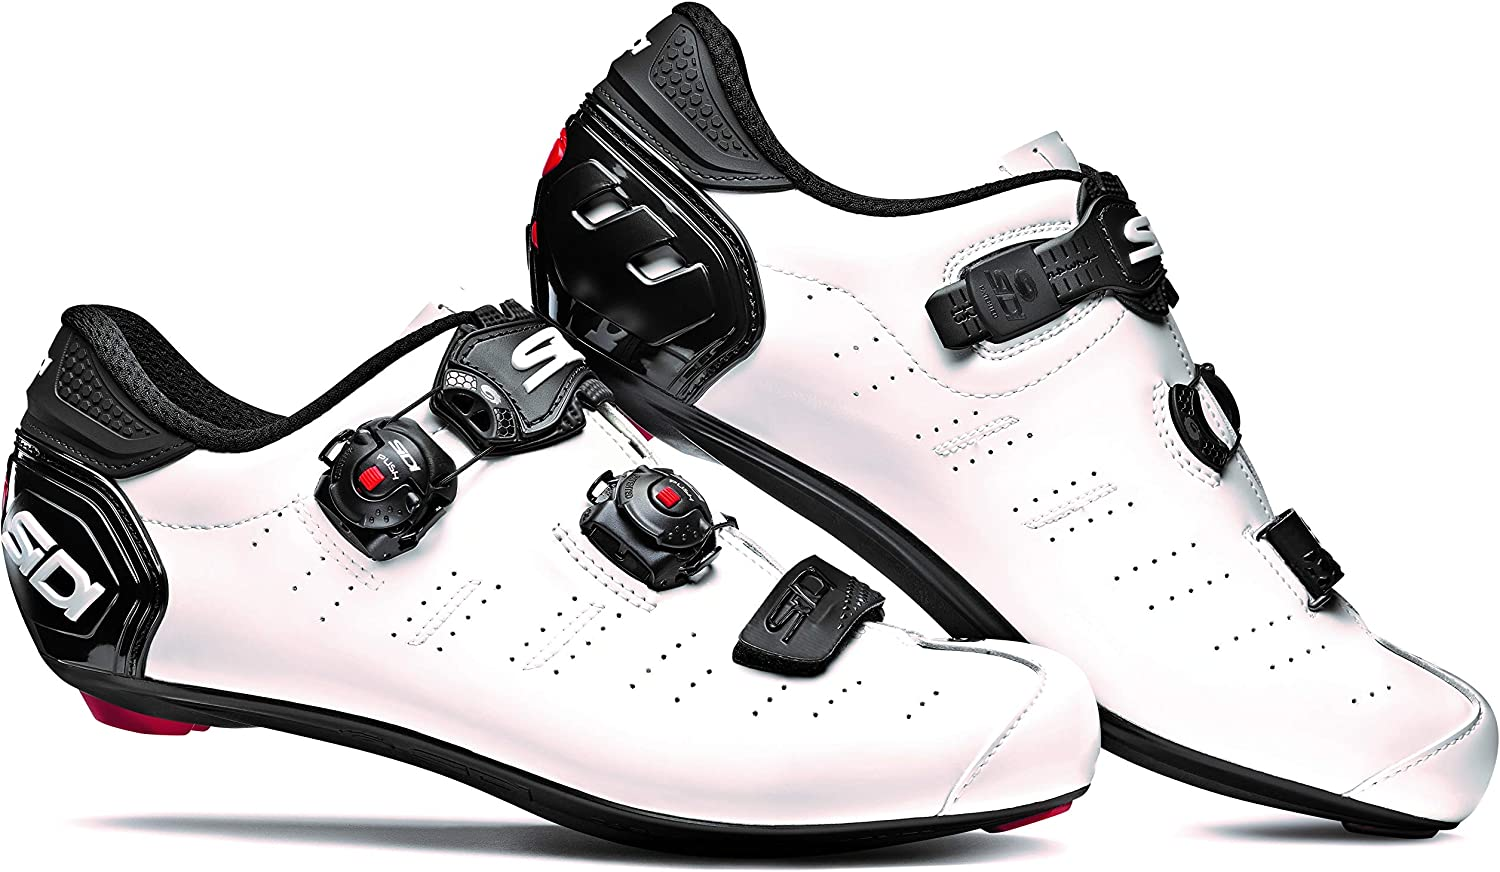 Ergo 5 Mega Carbon Road Cycle Shoes (Wide)